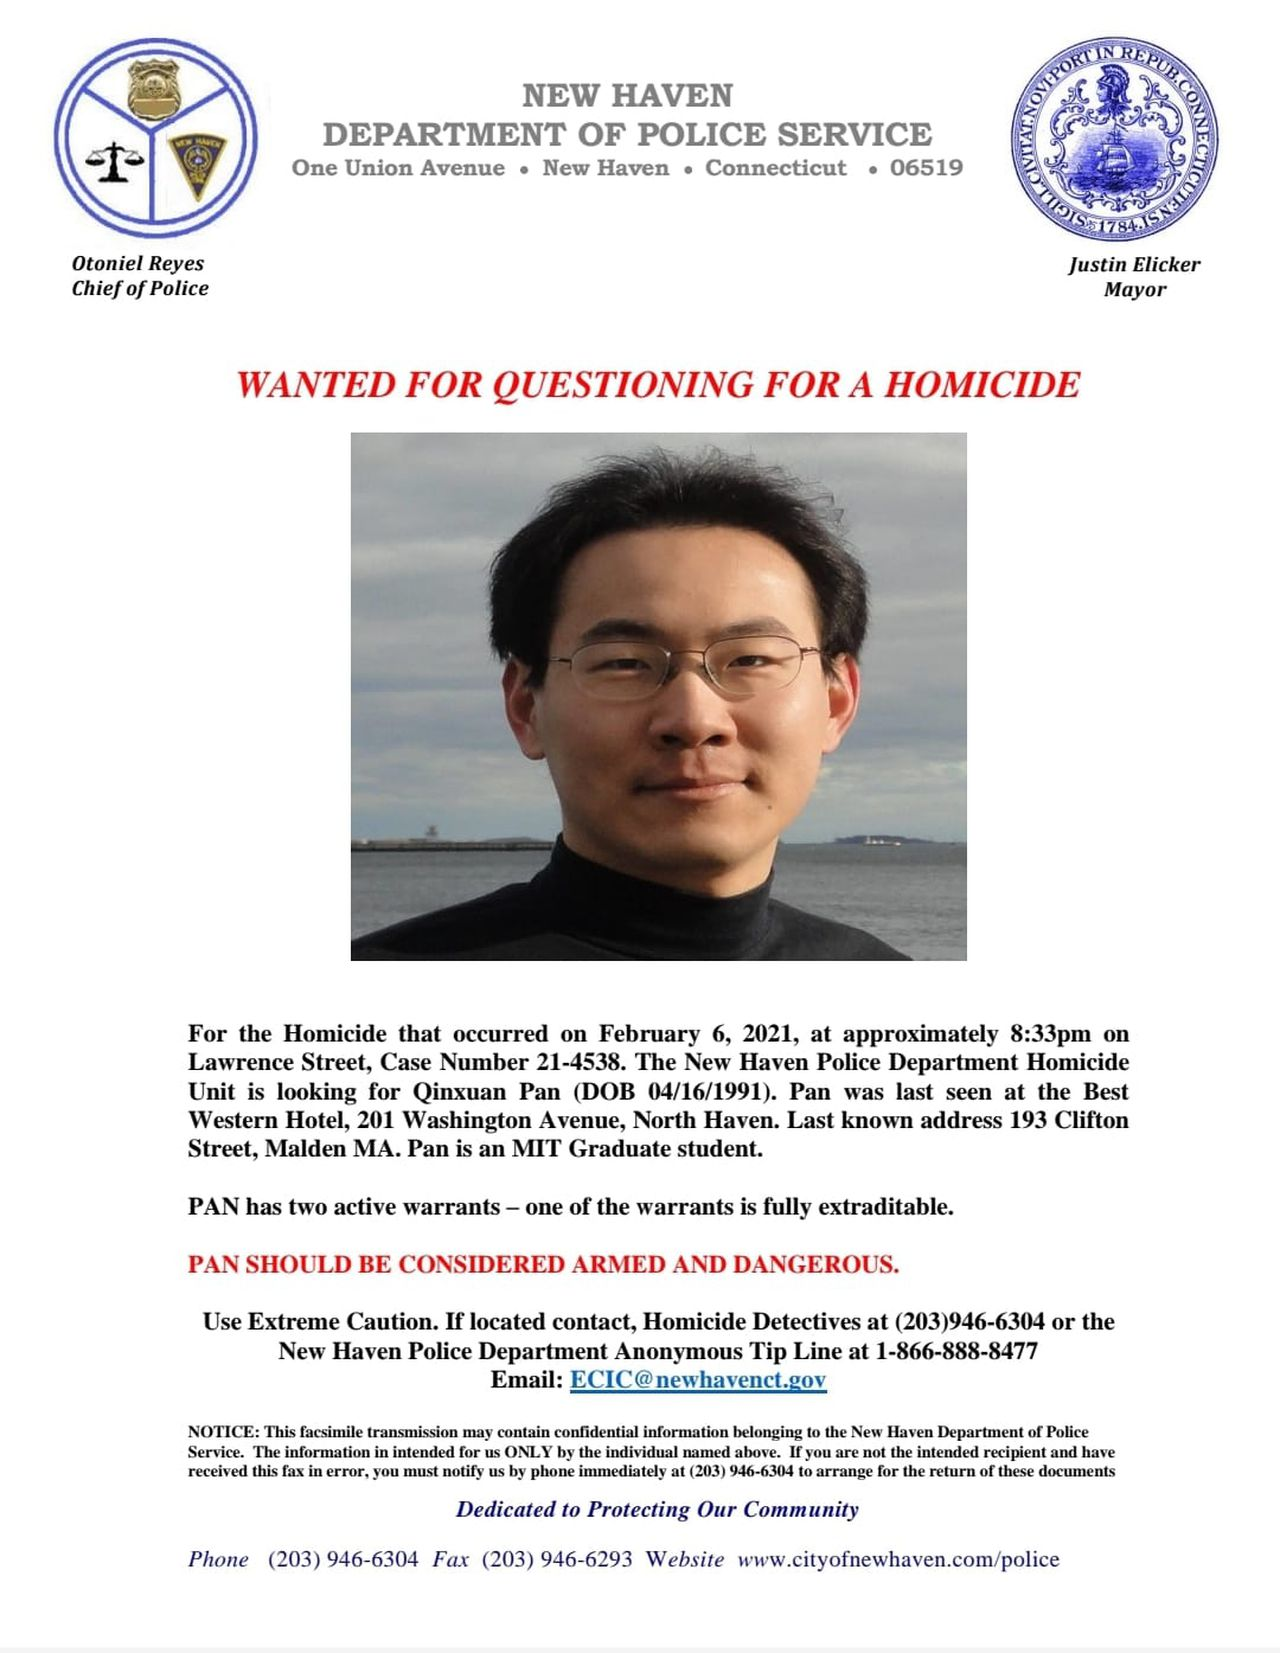 Police on Wednesday, Feb. 11, 2021, named Qinxuan Pan, a student at the Massachusetts Institute of Technology as a person of interest in the slaying of Yale University student Kevin Jiang earlier this month, noting he should be considered armed and dangerous. (New Haven Police Department)